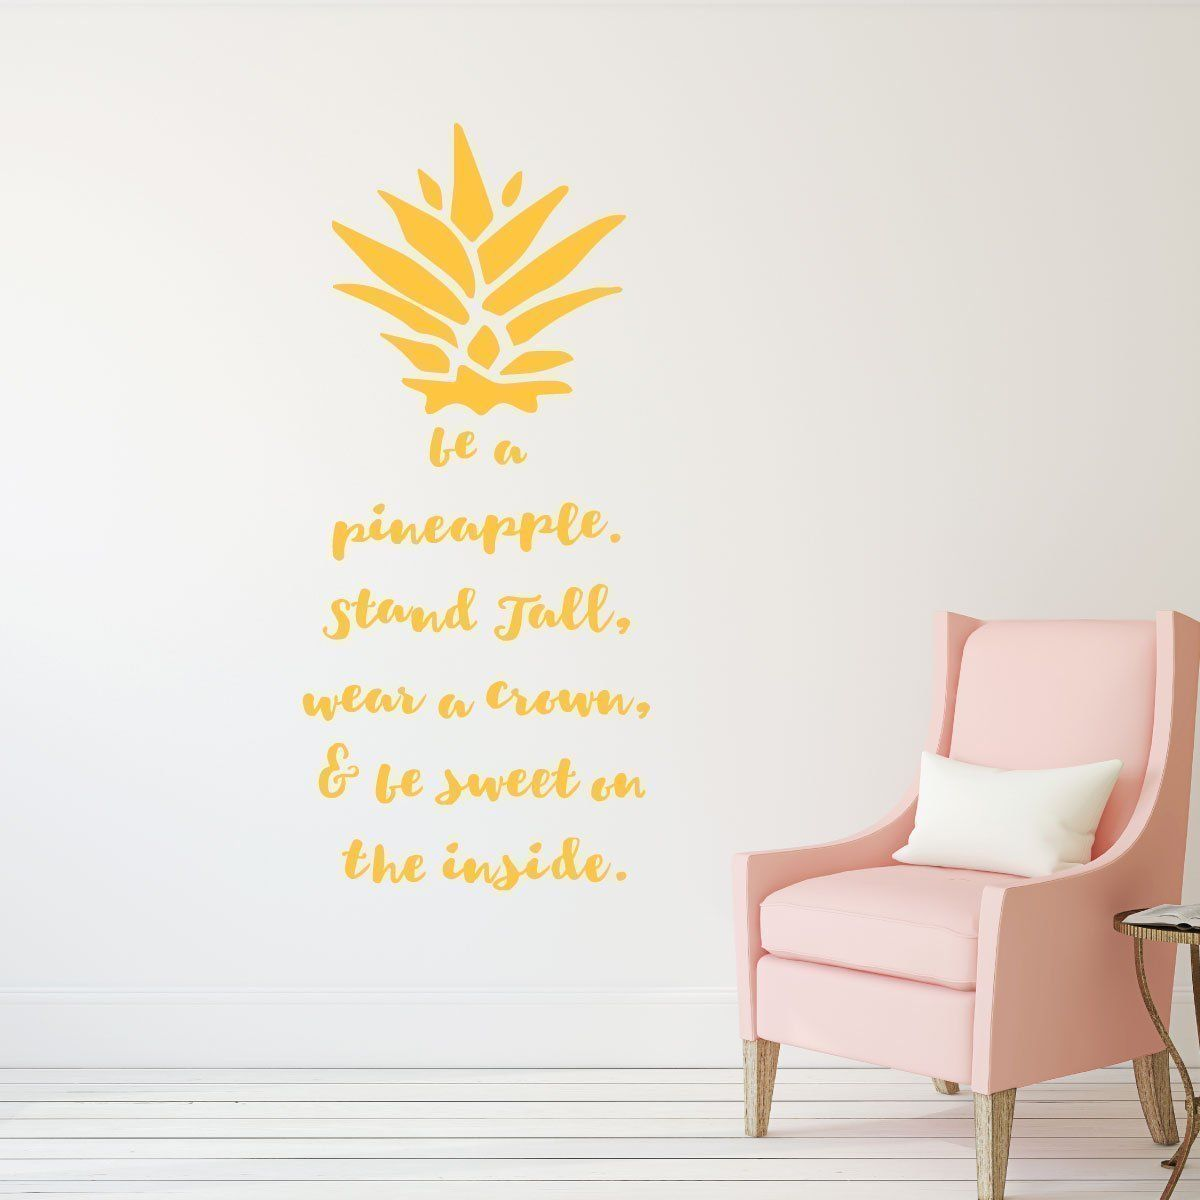 Be A Pineapple Wall Decal Removable Vinyl Sticker With Hawaiian